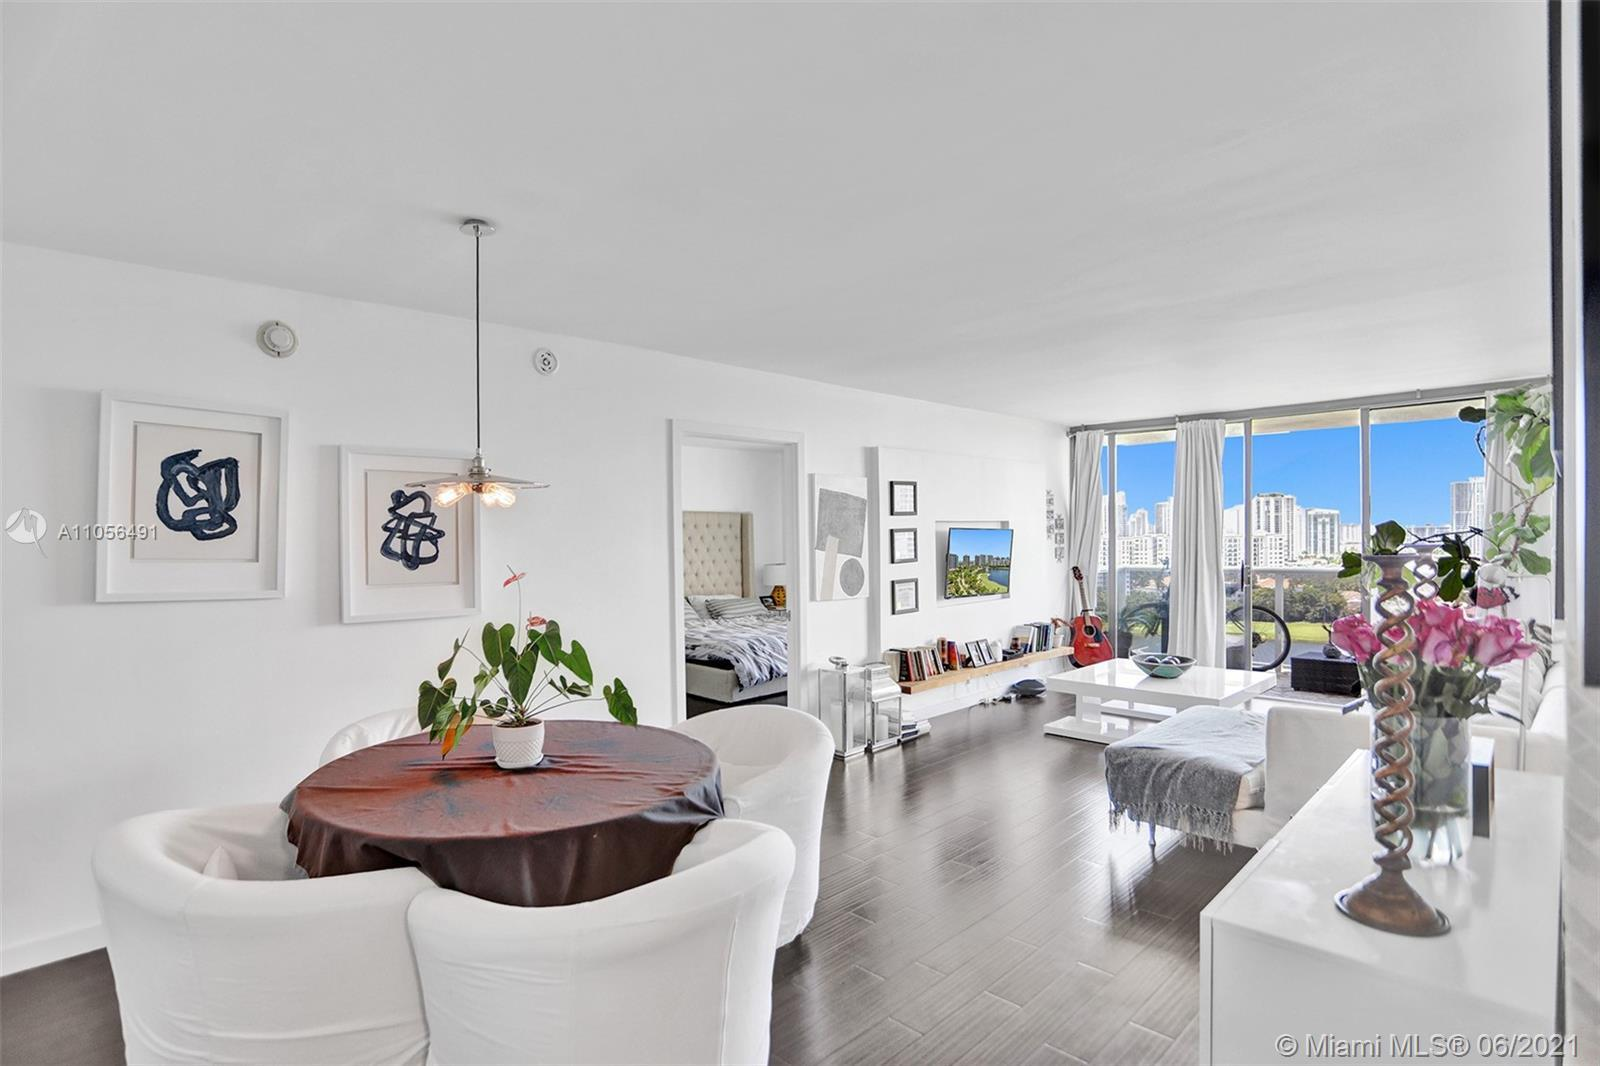 Immaculate 19th Floor Corner-Unit with Breathtaking views of Golf Course, Ocean, and Miami High-Rise